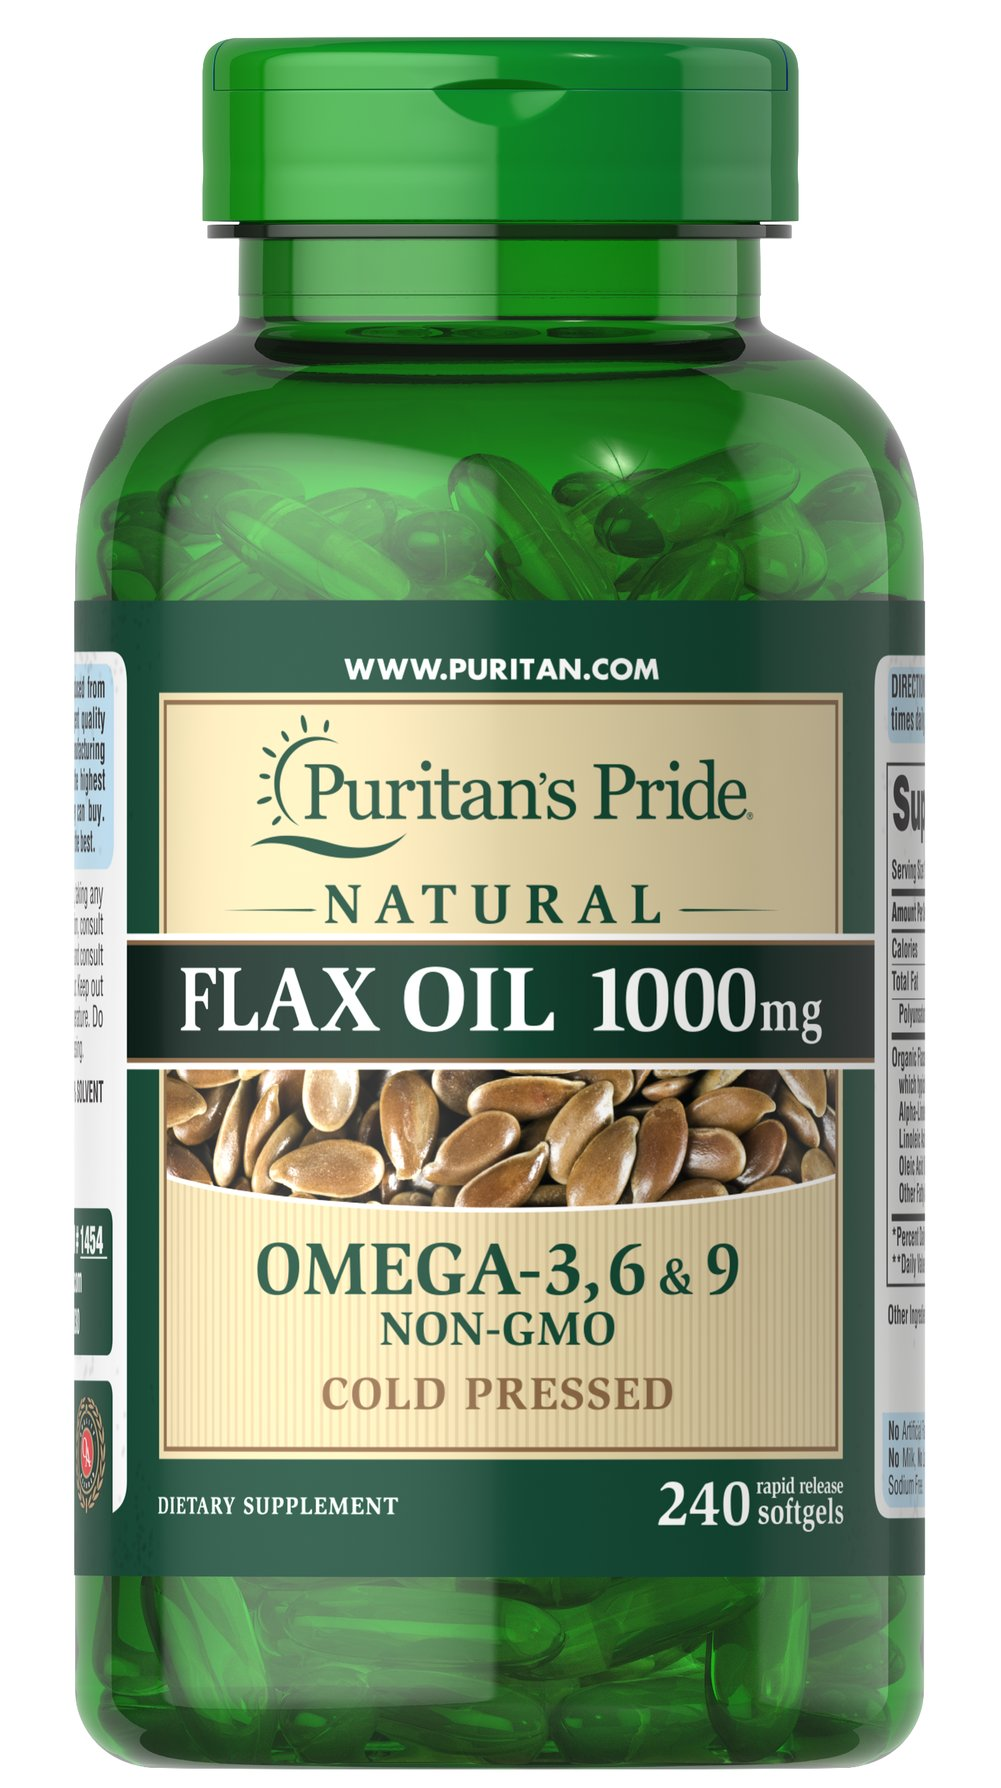 Natural Flax Oil 1000 mg  240 Rapid Release Softgels 1000 mg $22.99